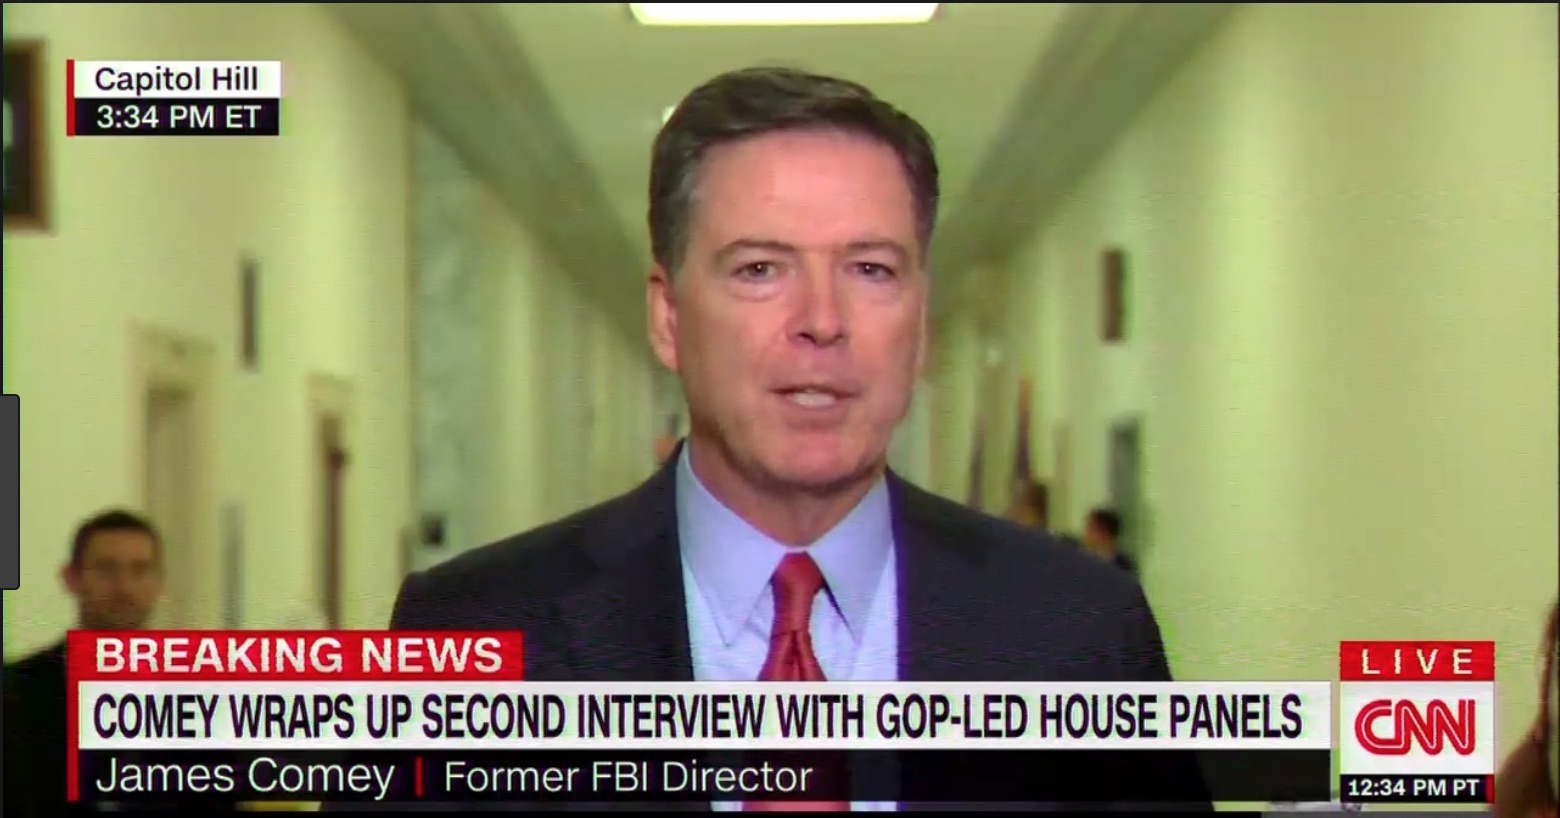 Comey blasts Trump over FBI Cohen raid tweet